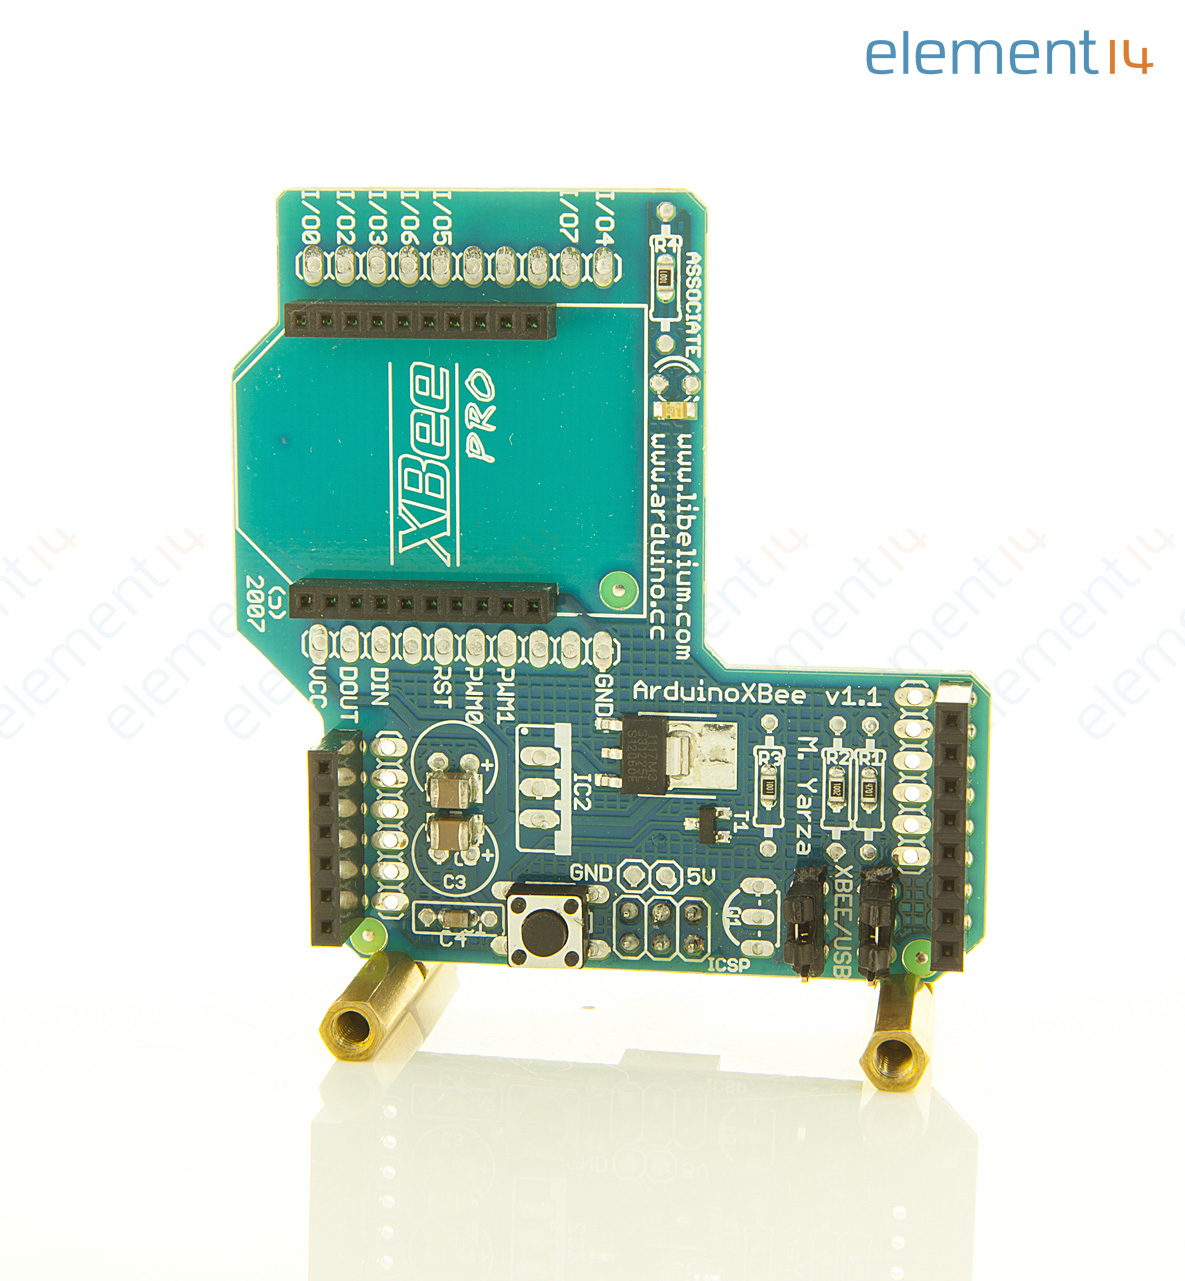 A arduino xbee shield for without rf module